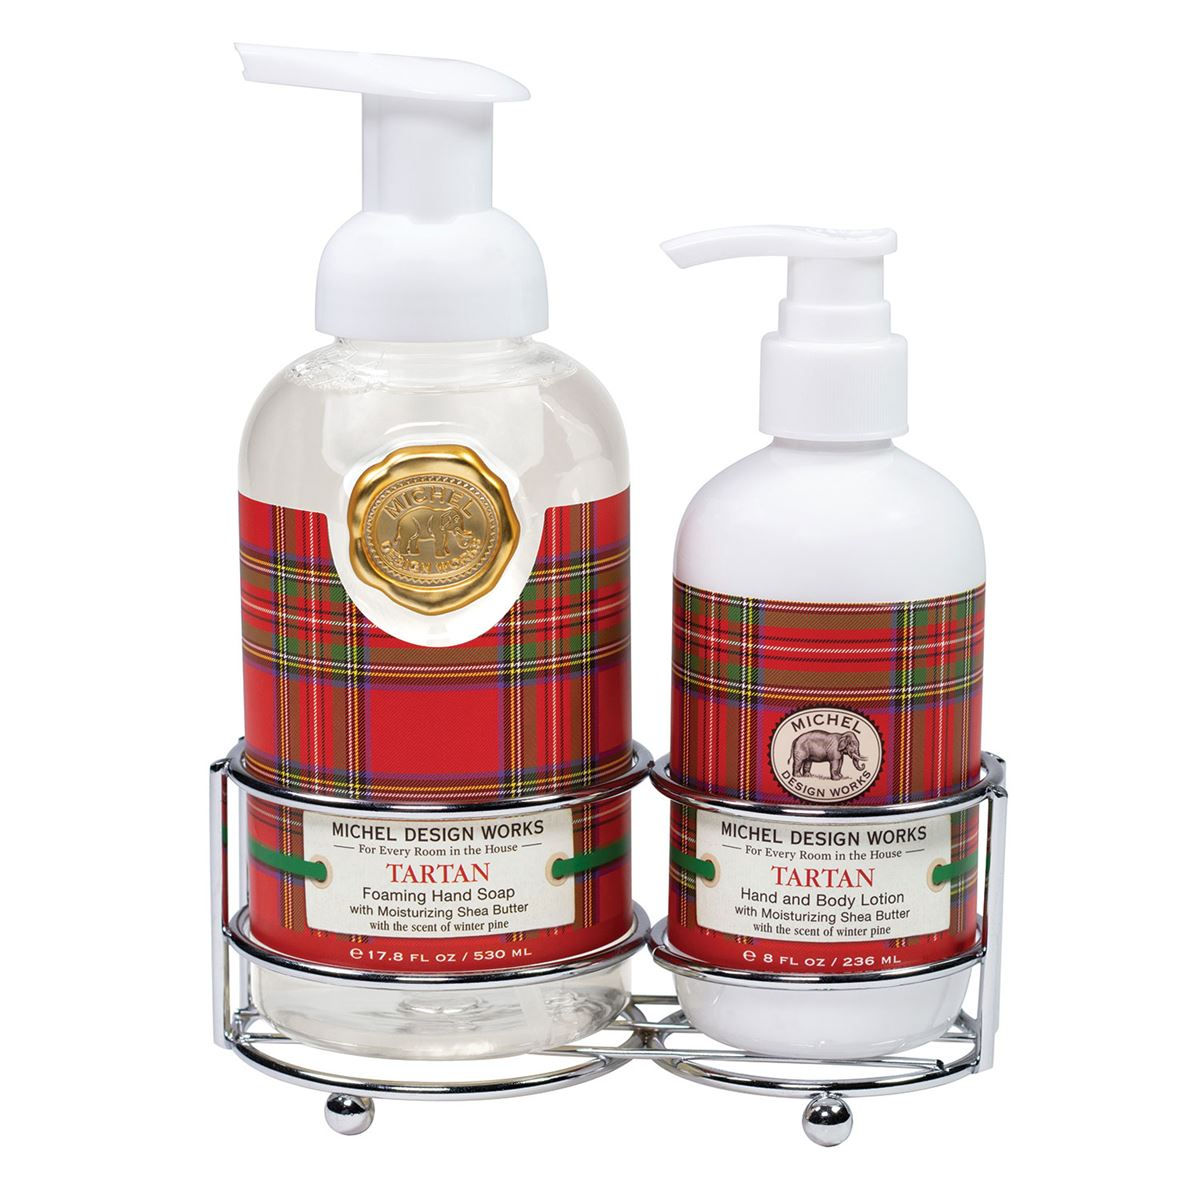 A silver-toned caddy holding our popular foaming hand soap and rich hand lotion together in one place, whether that is in the bath or the kitchen. Very elegant, very convenient.